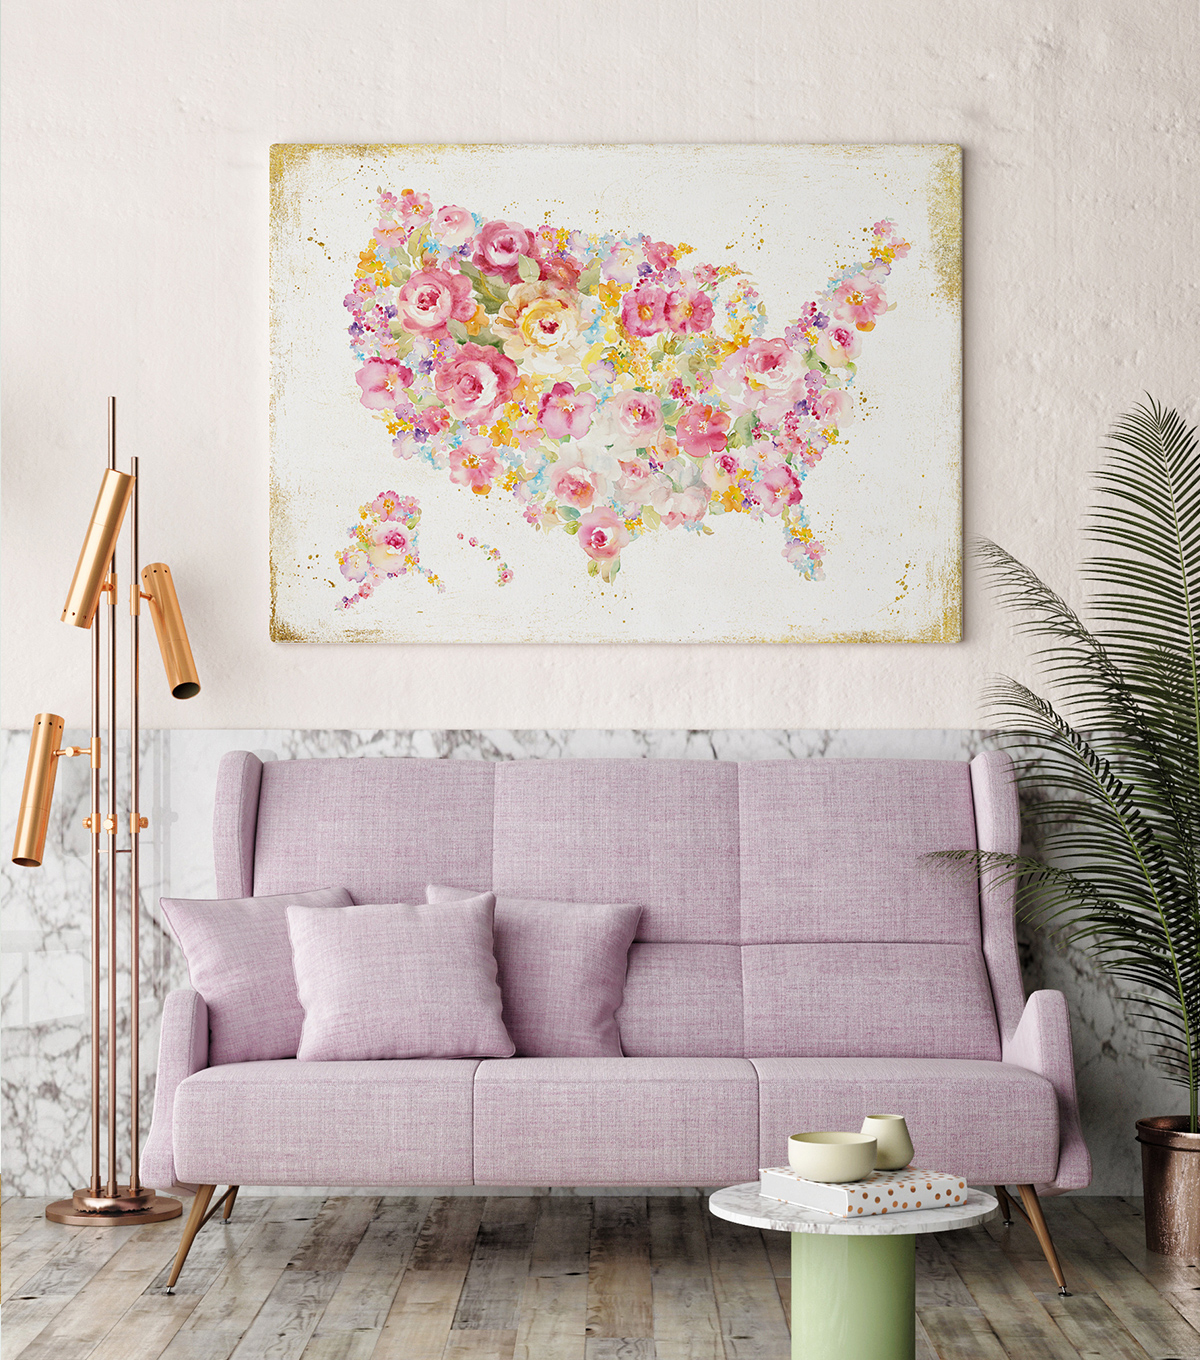 Millennial Pink Art and Decor